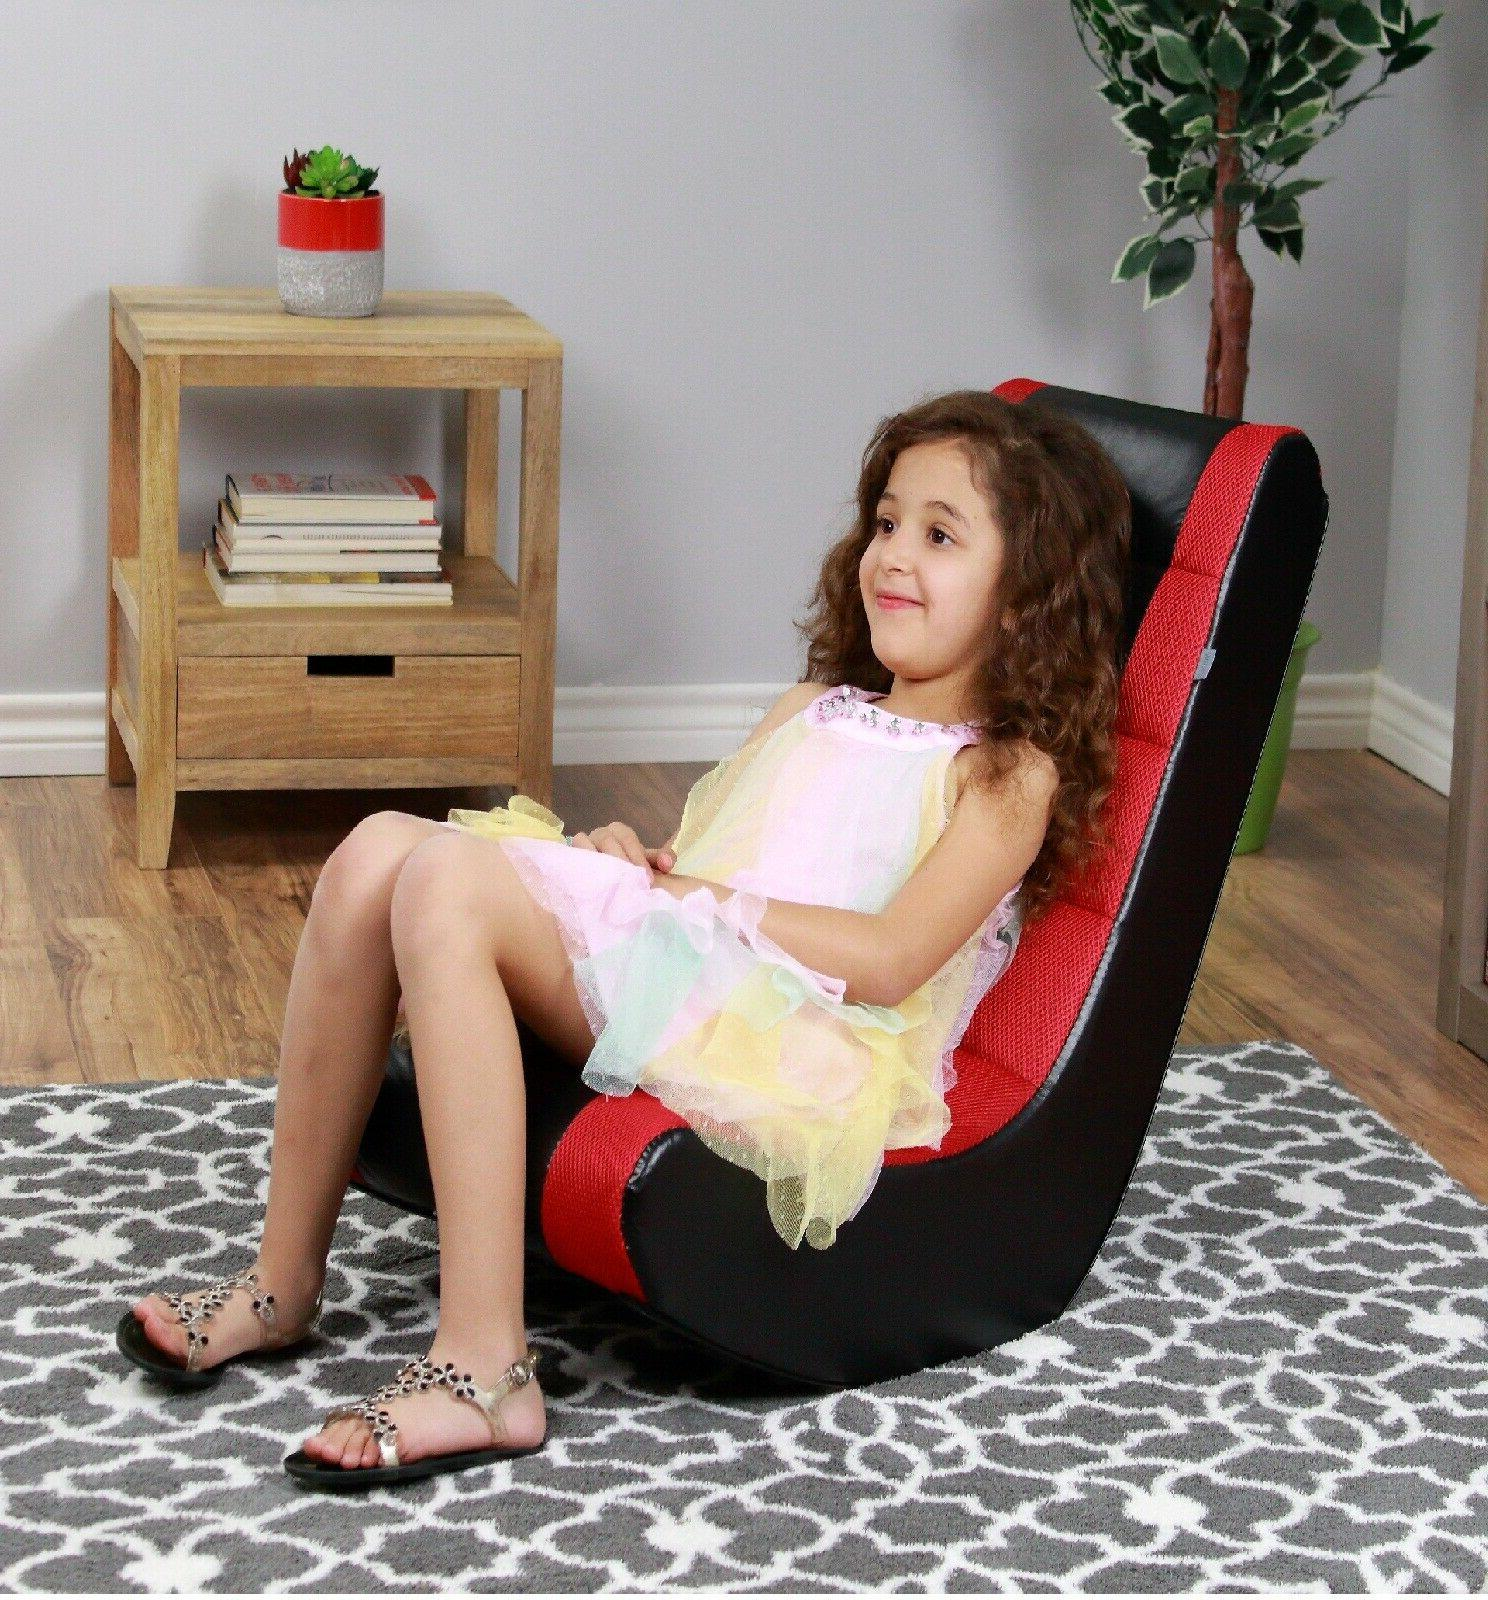 The Crew Furniture Classic Video Rocker Gaming Chair - Black/Red